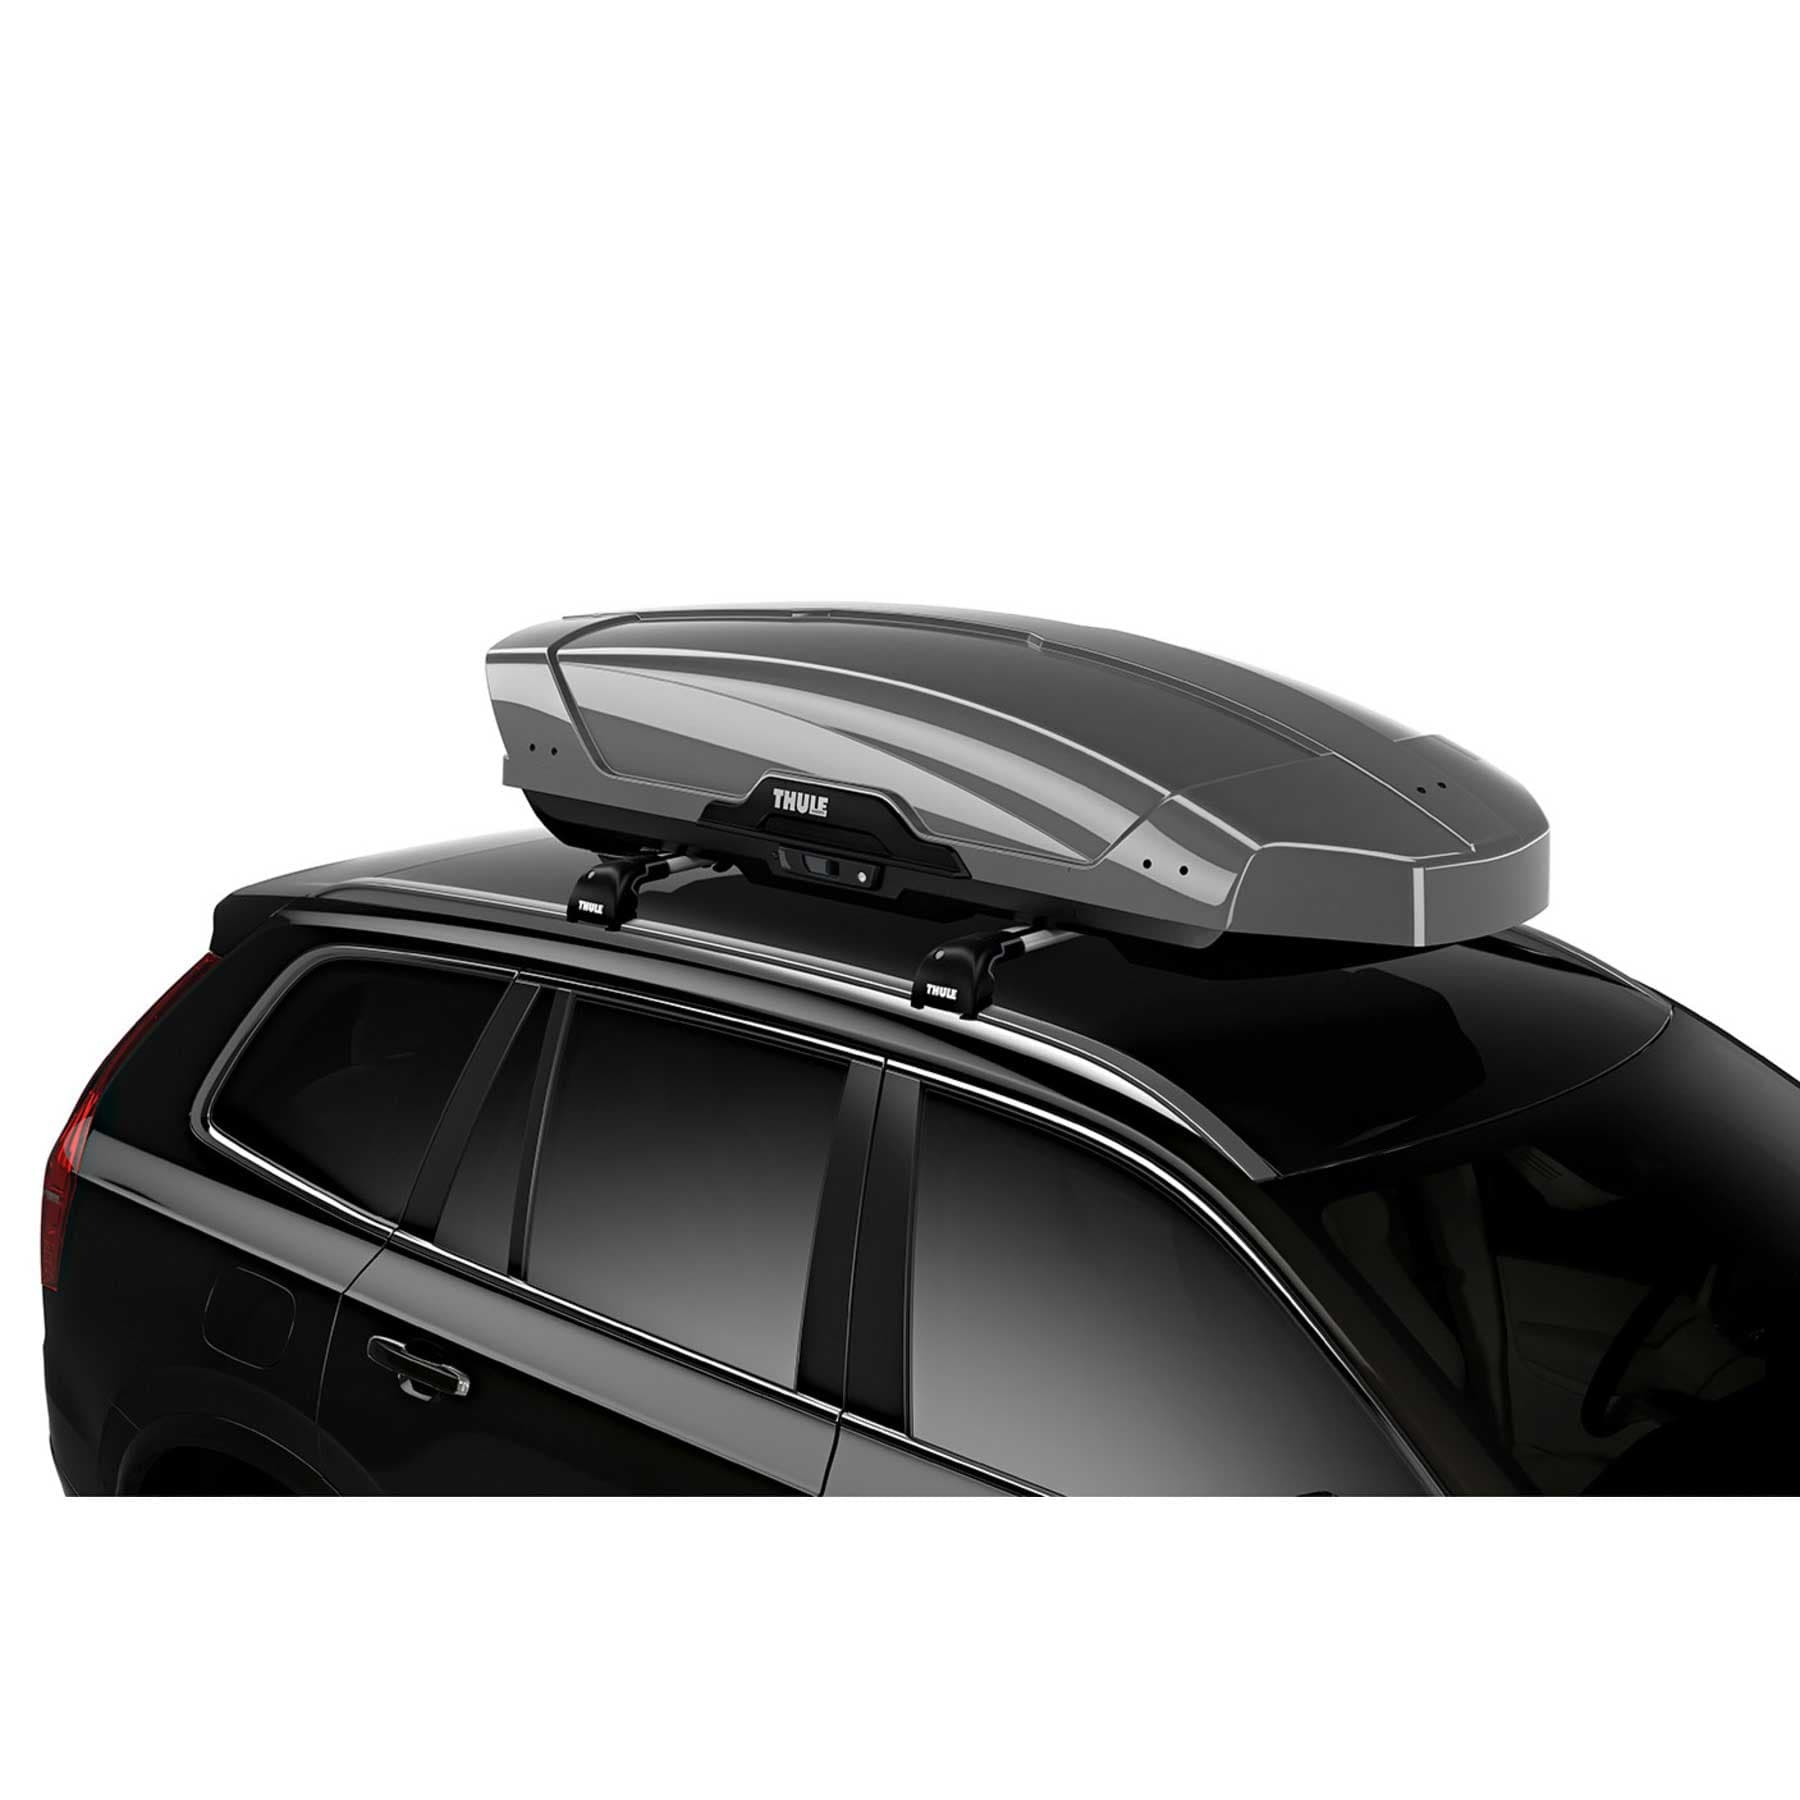 Thule Motion Xt Large Rooftop 16 Cu Ft Luggage Box Campmor